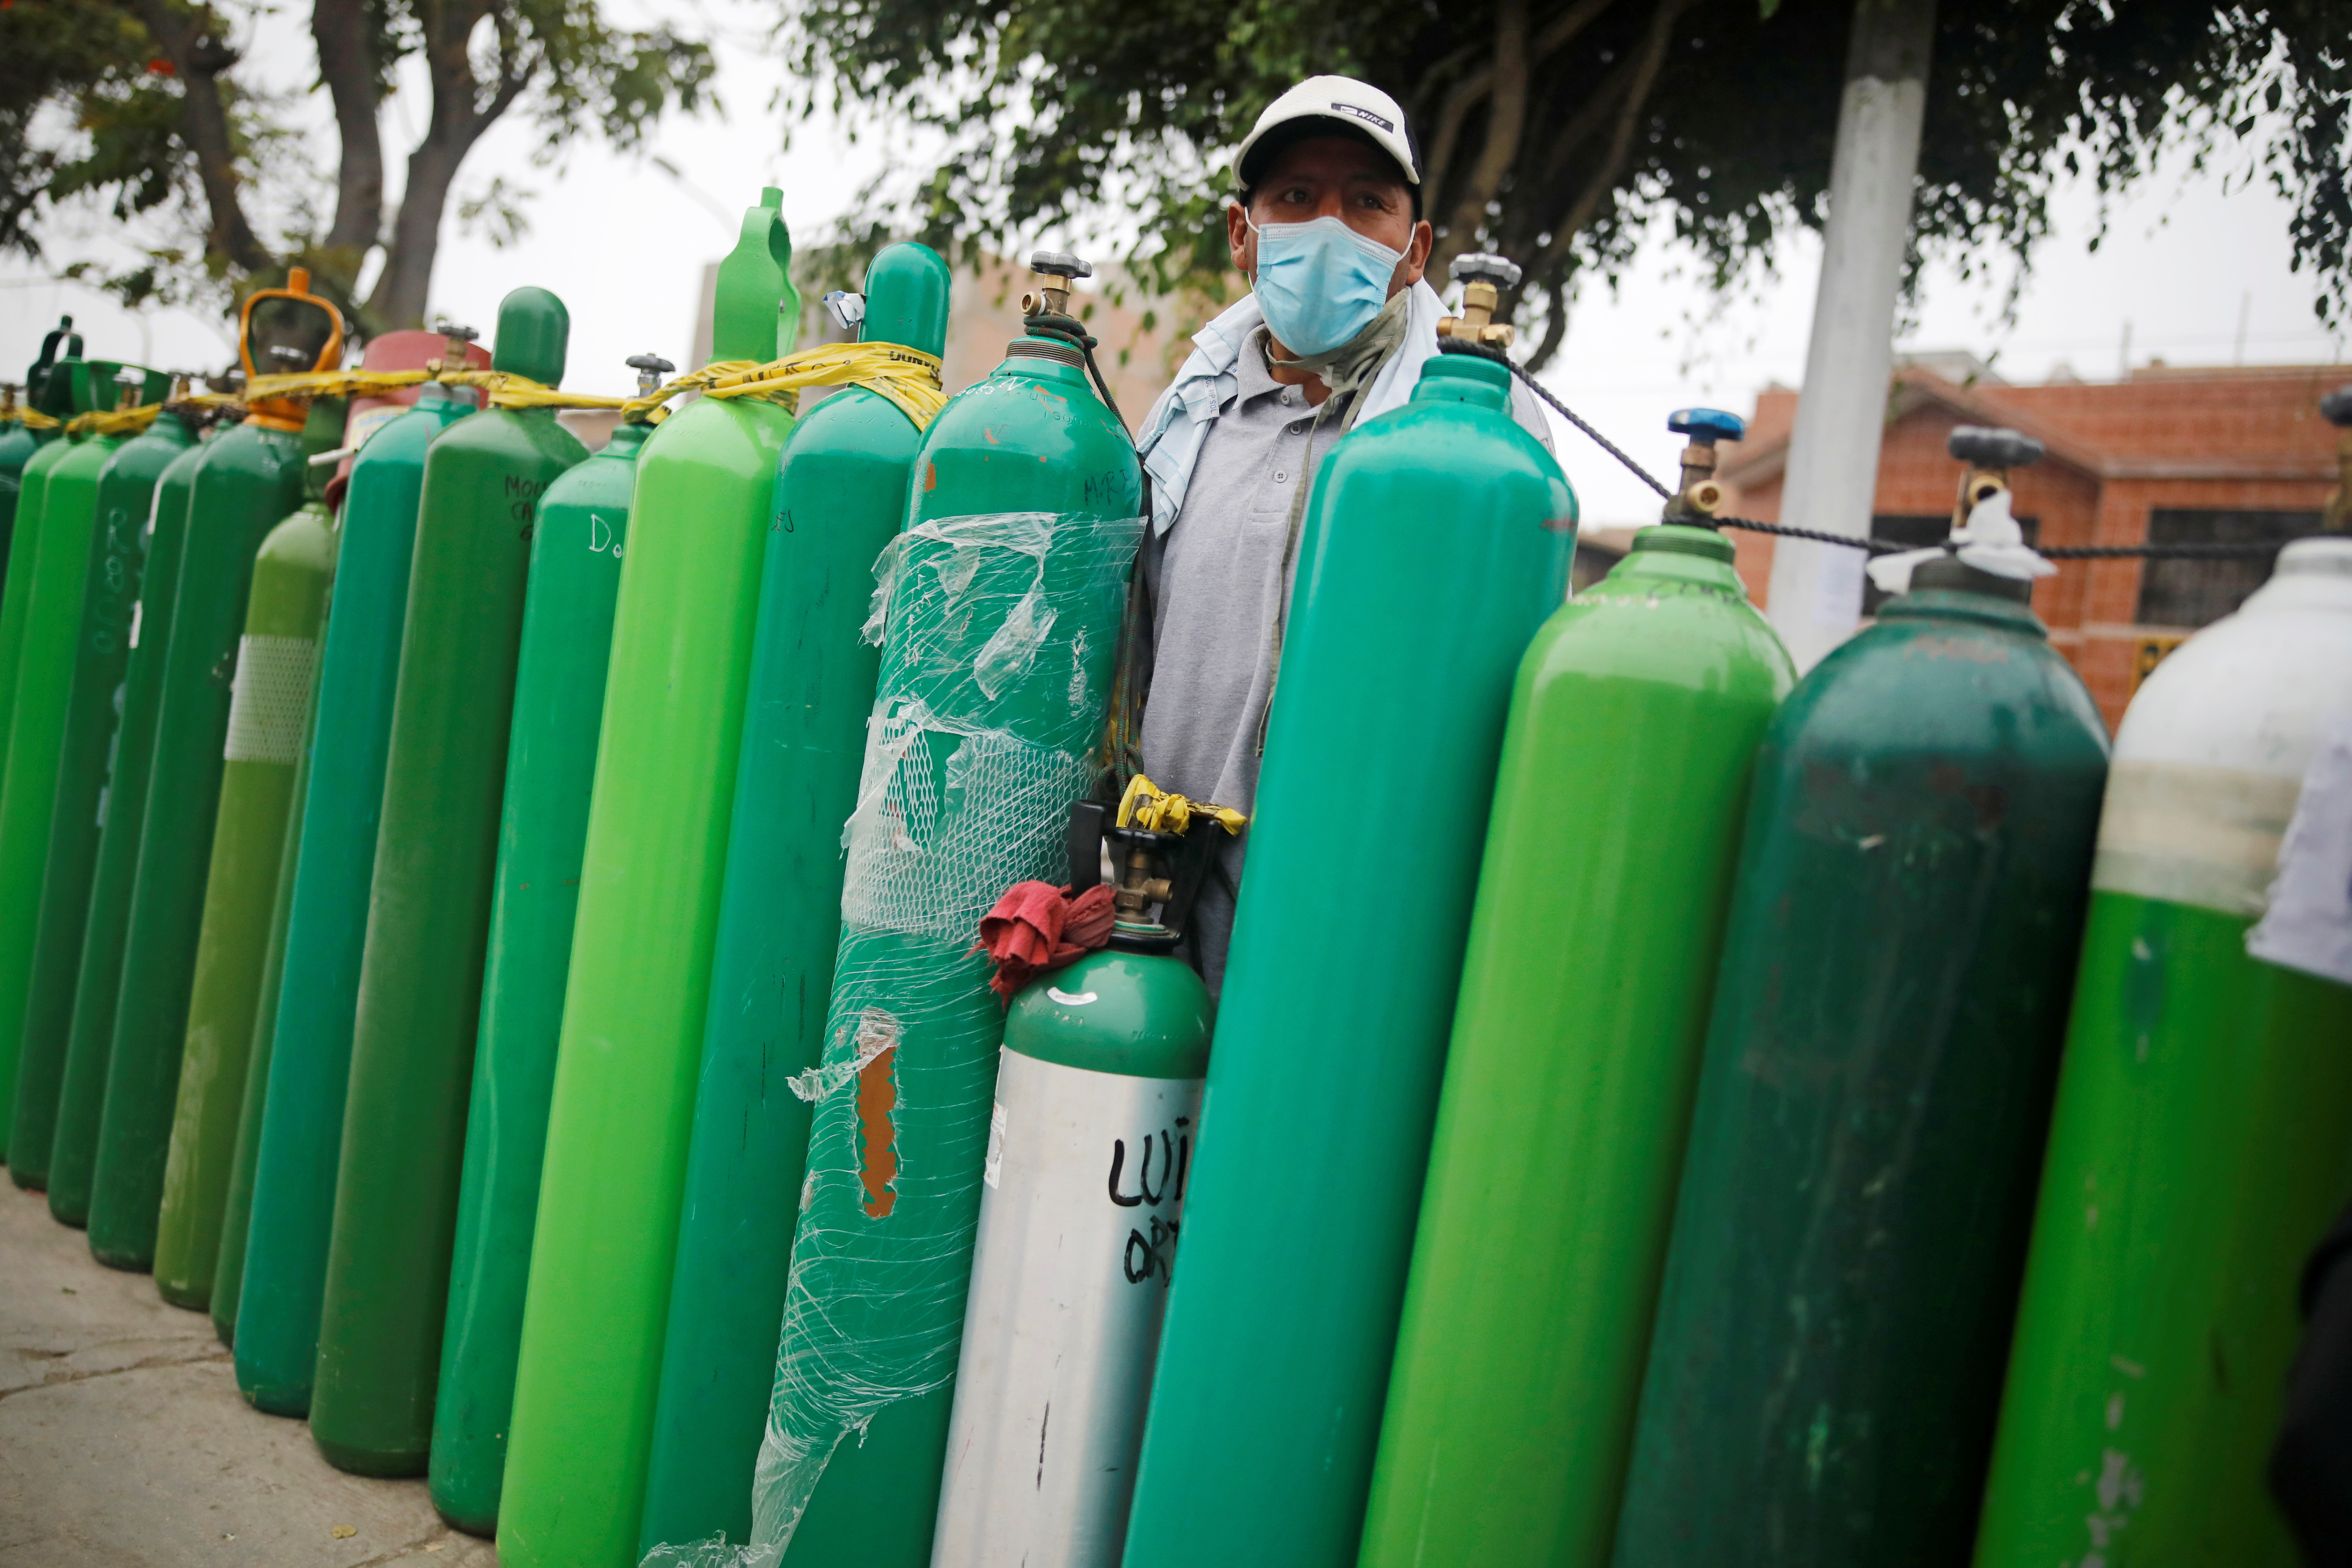 A man stands next to empty oxygen tanks to save a spot in the queue, as the supplier refills a tank per person and attends only up to 60 people a day, during the outbreak of the coronavirus disease (COVID-19), in Callao, Peru February 4, 2021. Picture taken February 4, 2021. REUTERS/Sebastian Castaneda - RC2OML9B317B